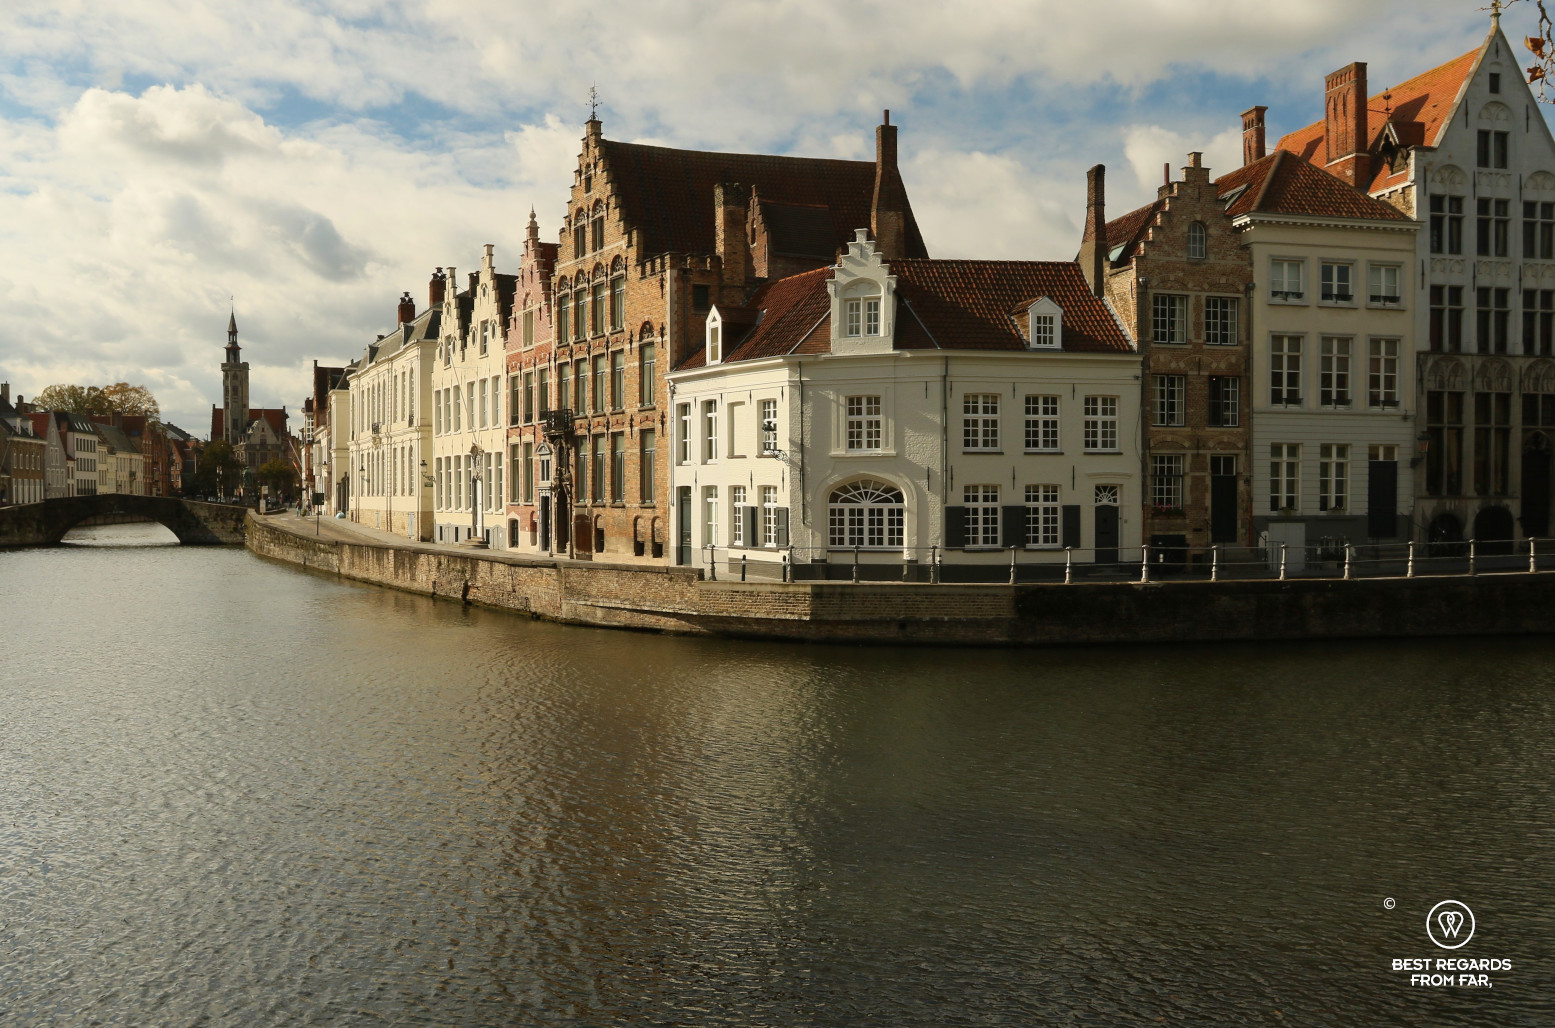 Waterway with cute houses lined up in Bruges, Belgium